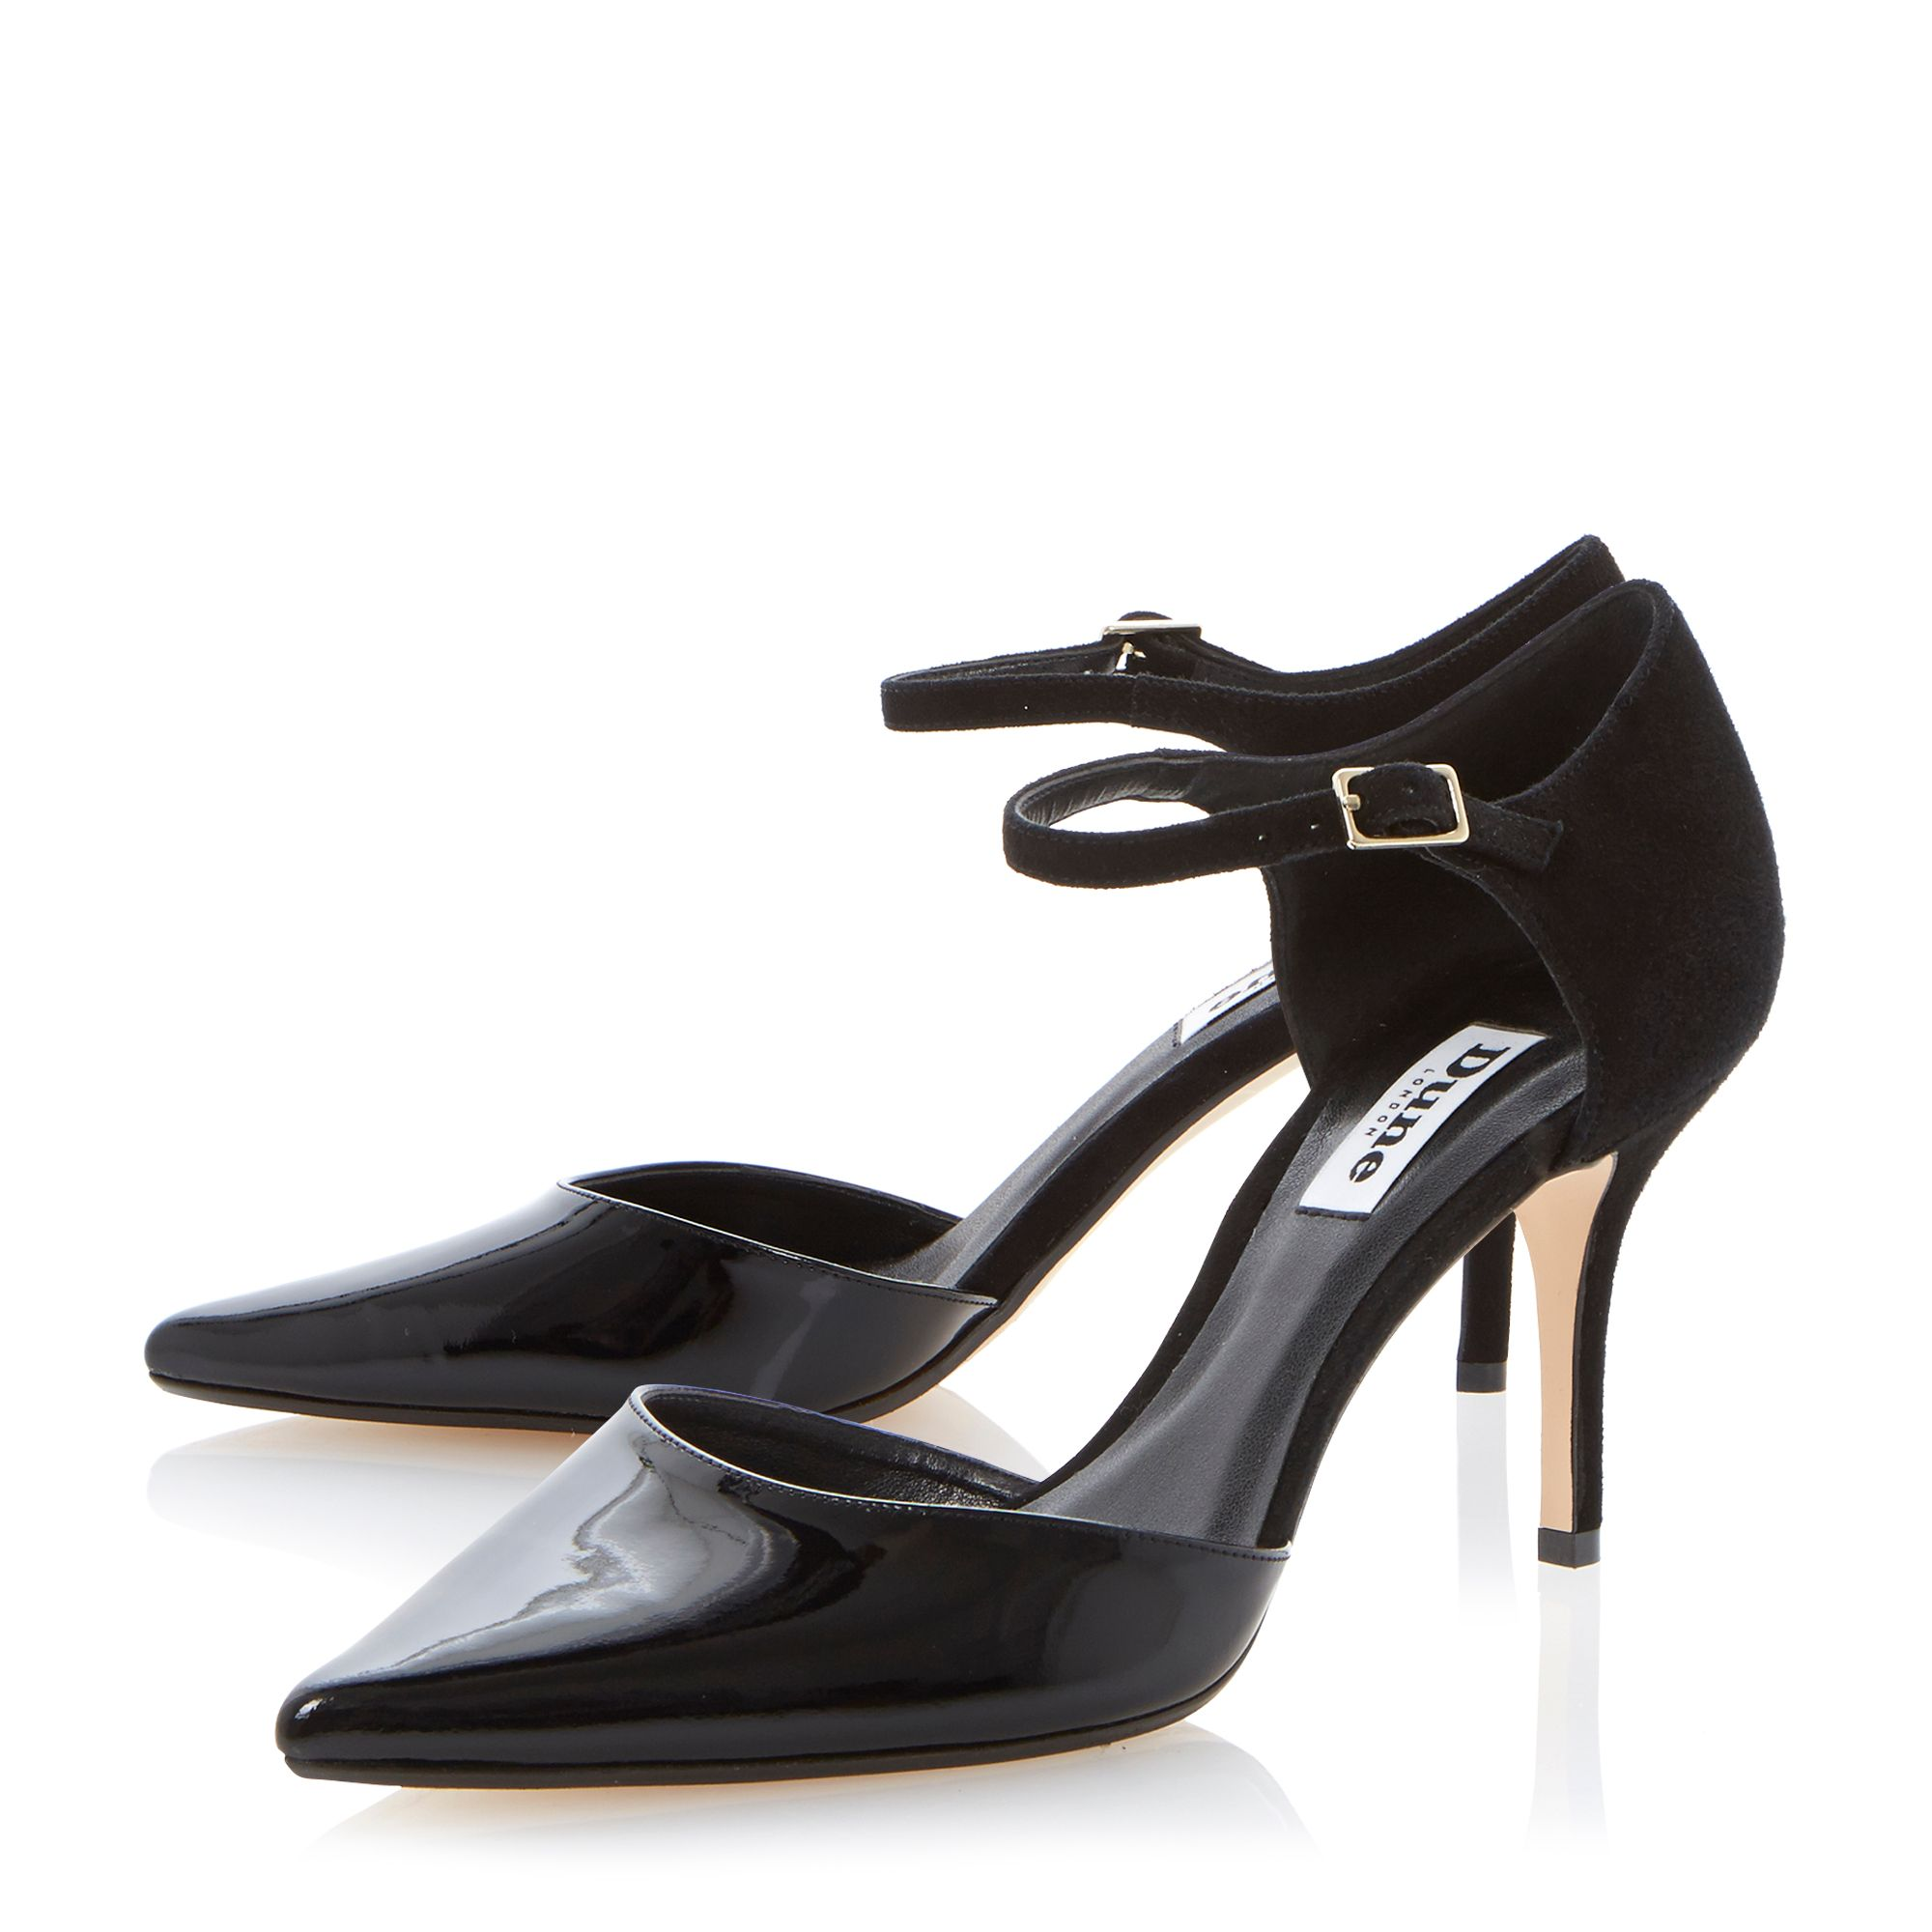 Claudia two part high court shoes